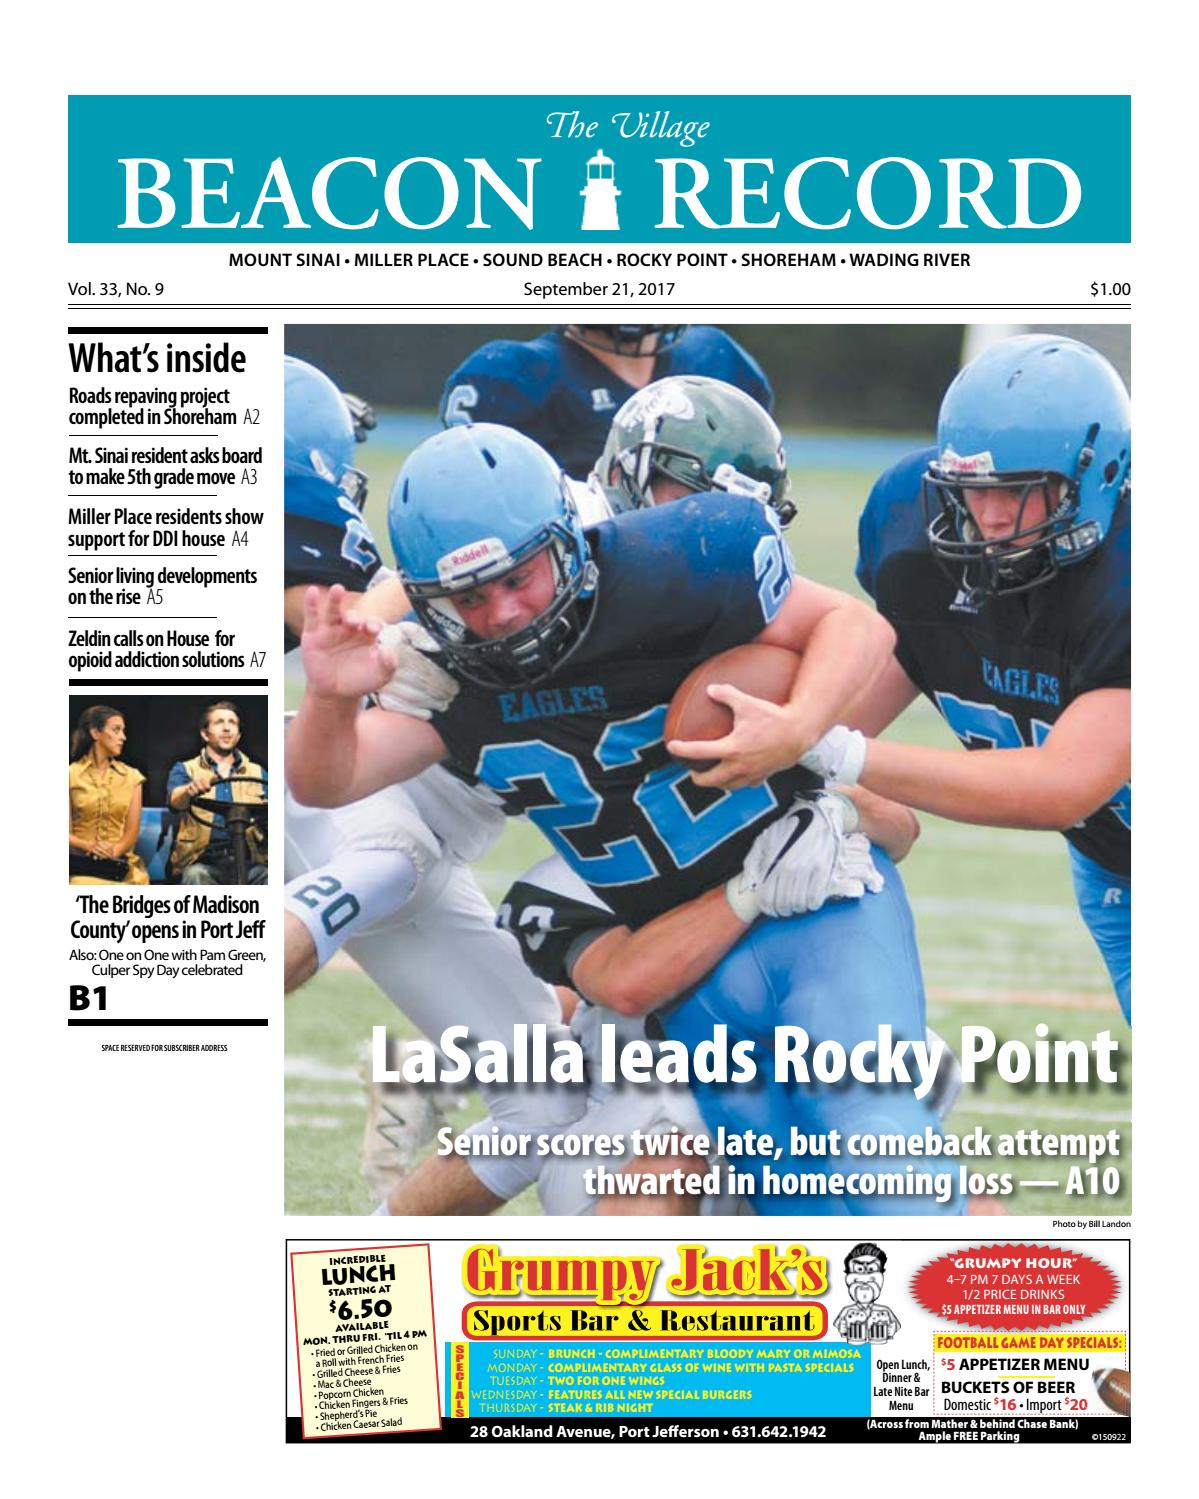 The Village Beacon Record - September 21, 2017 by TBR News